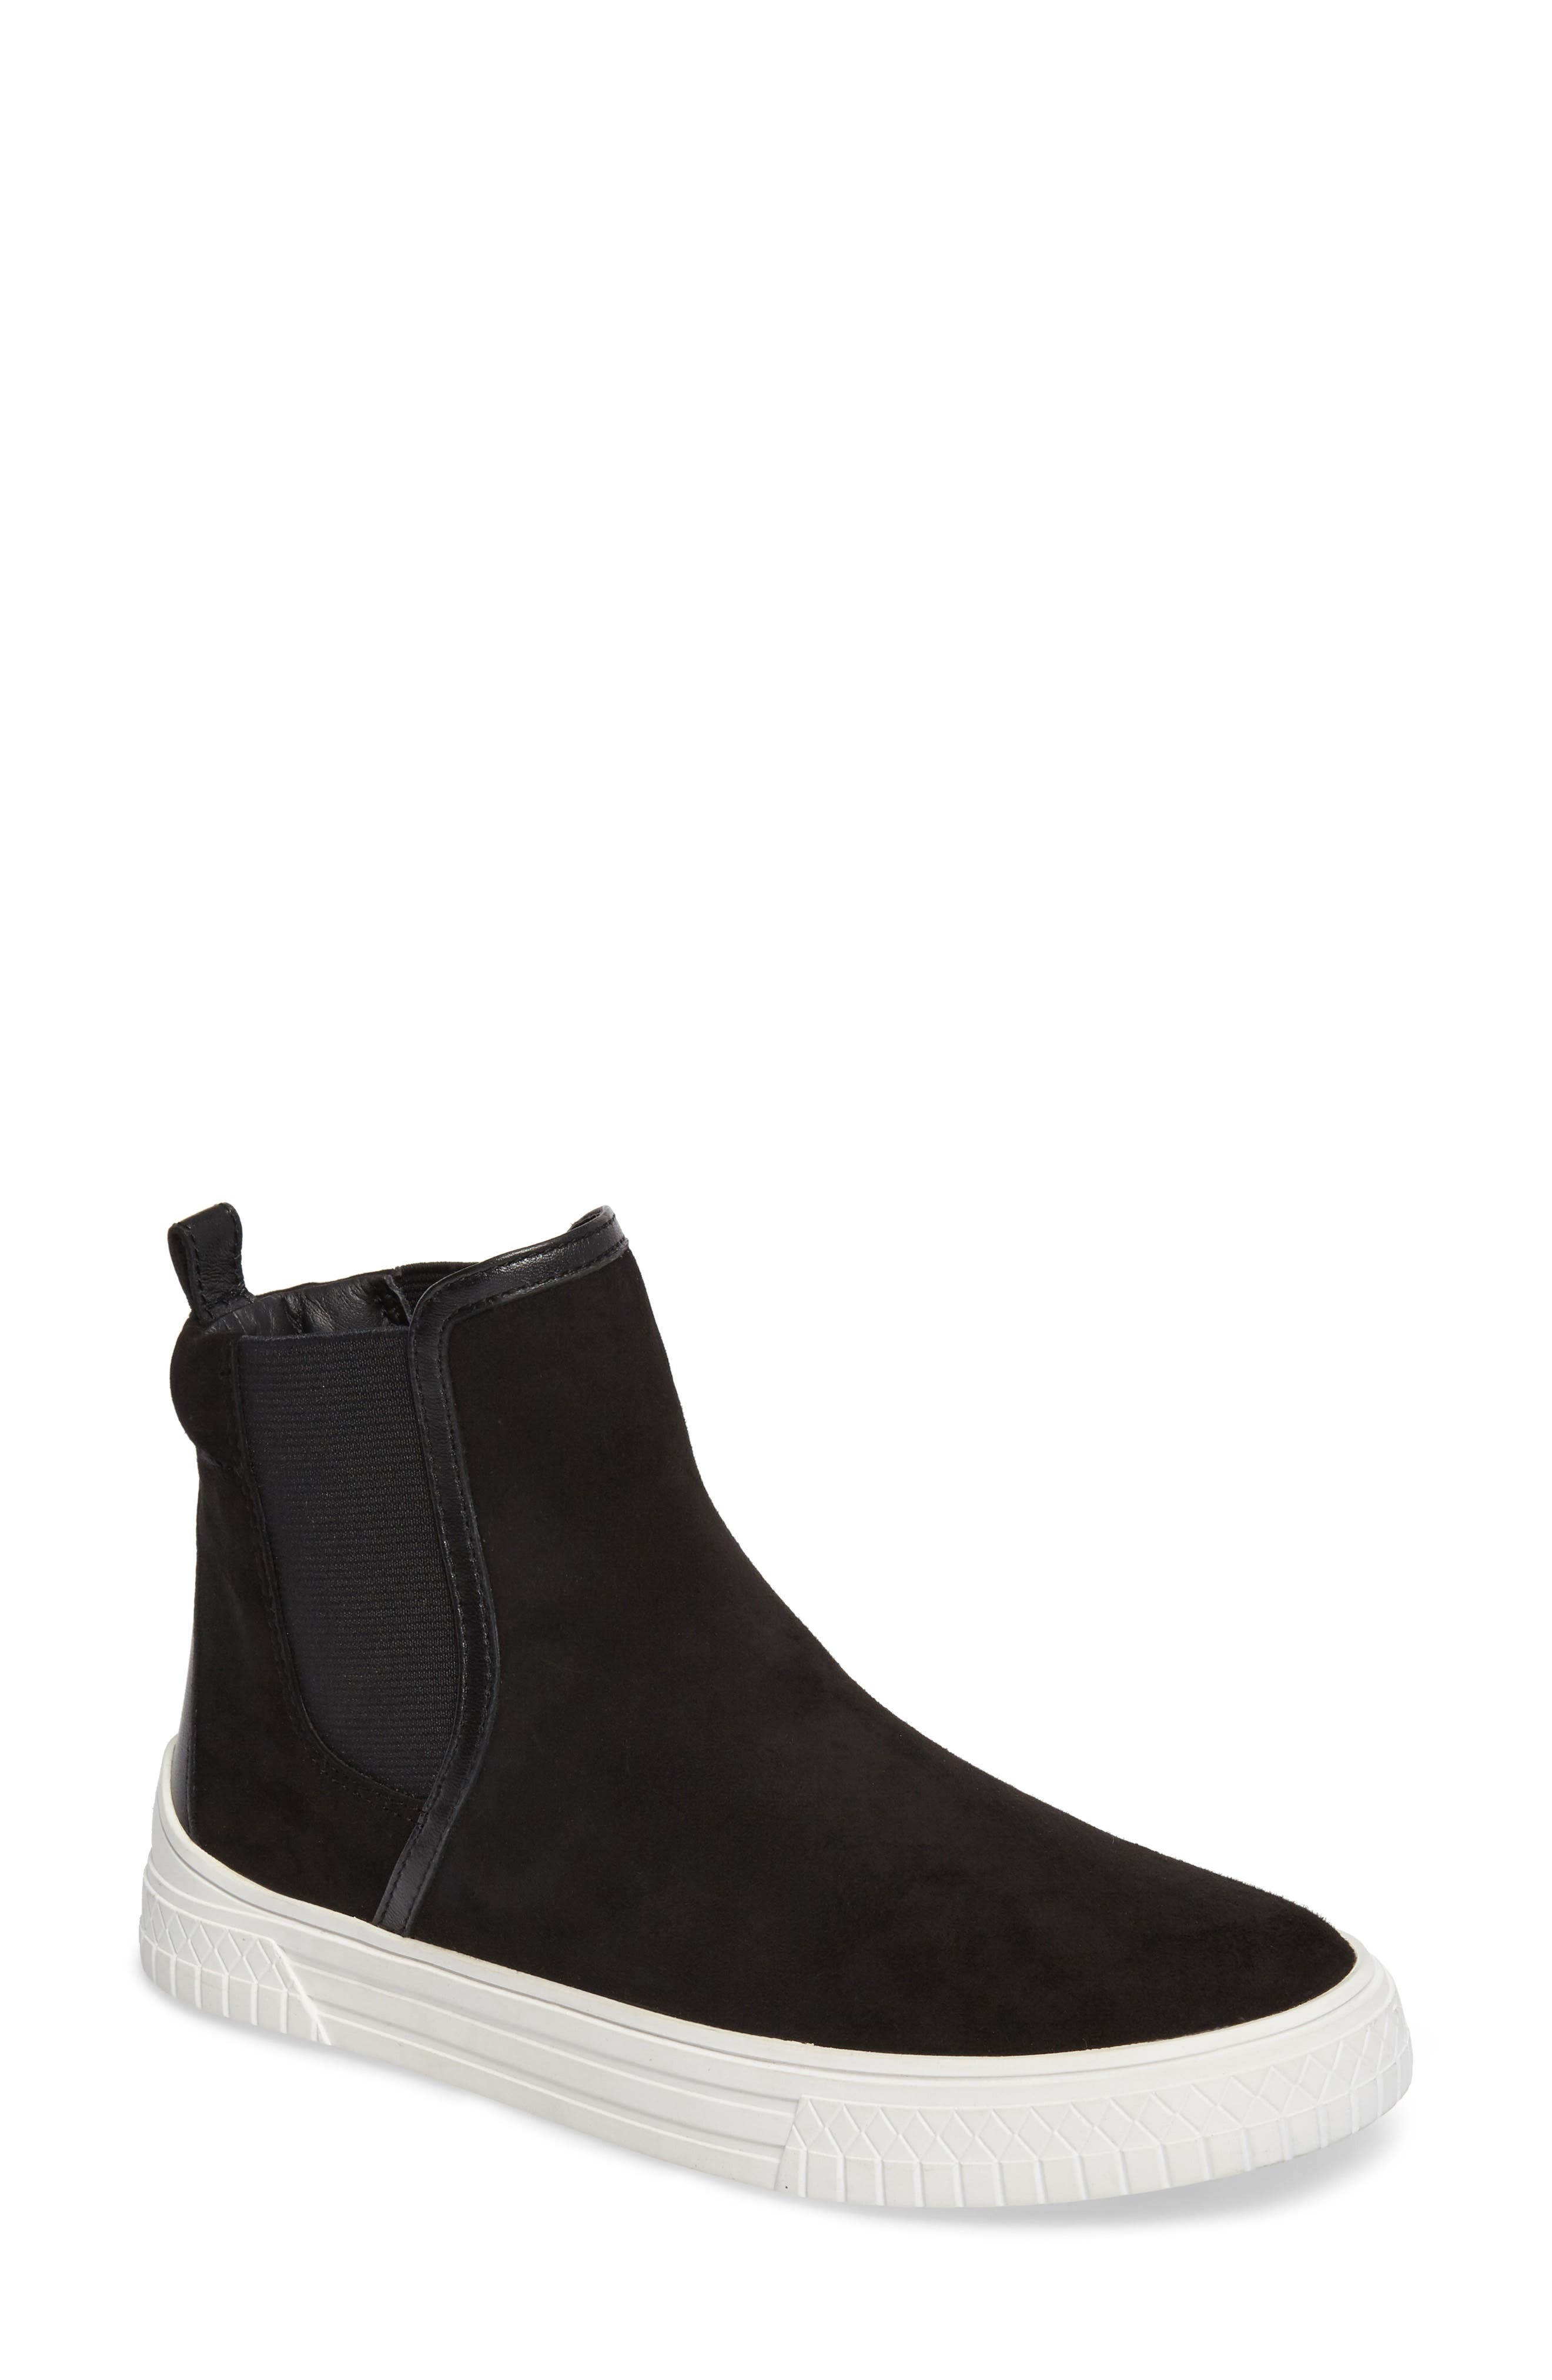 Gage Chelsea Boot,                         Main,                         color, 007